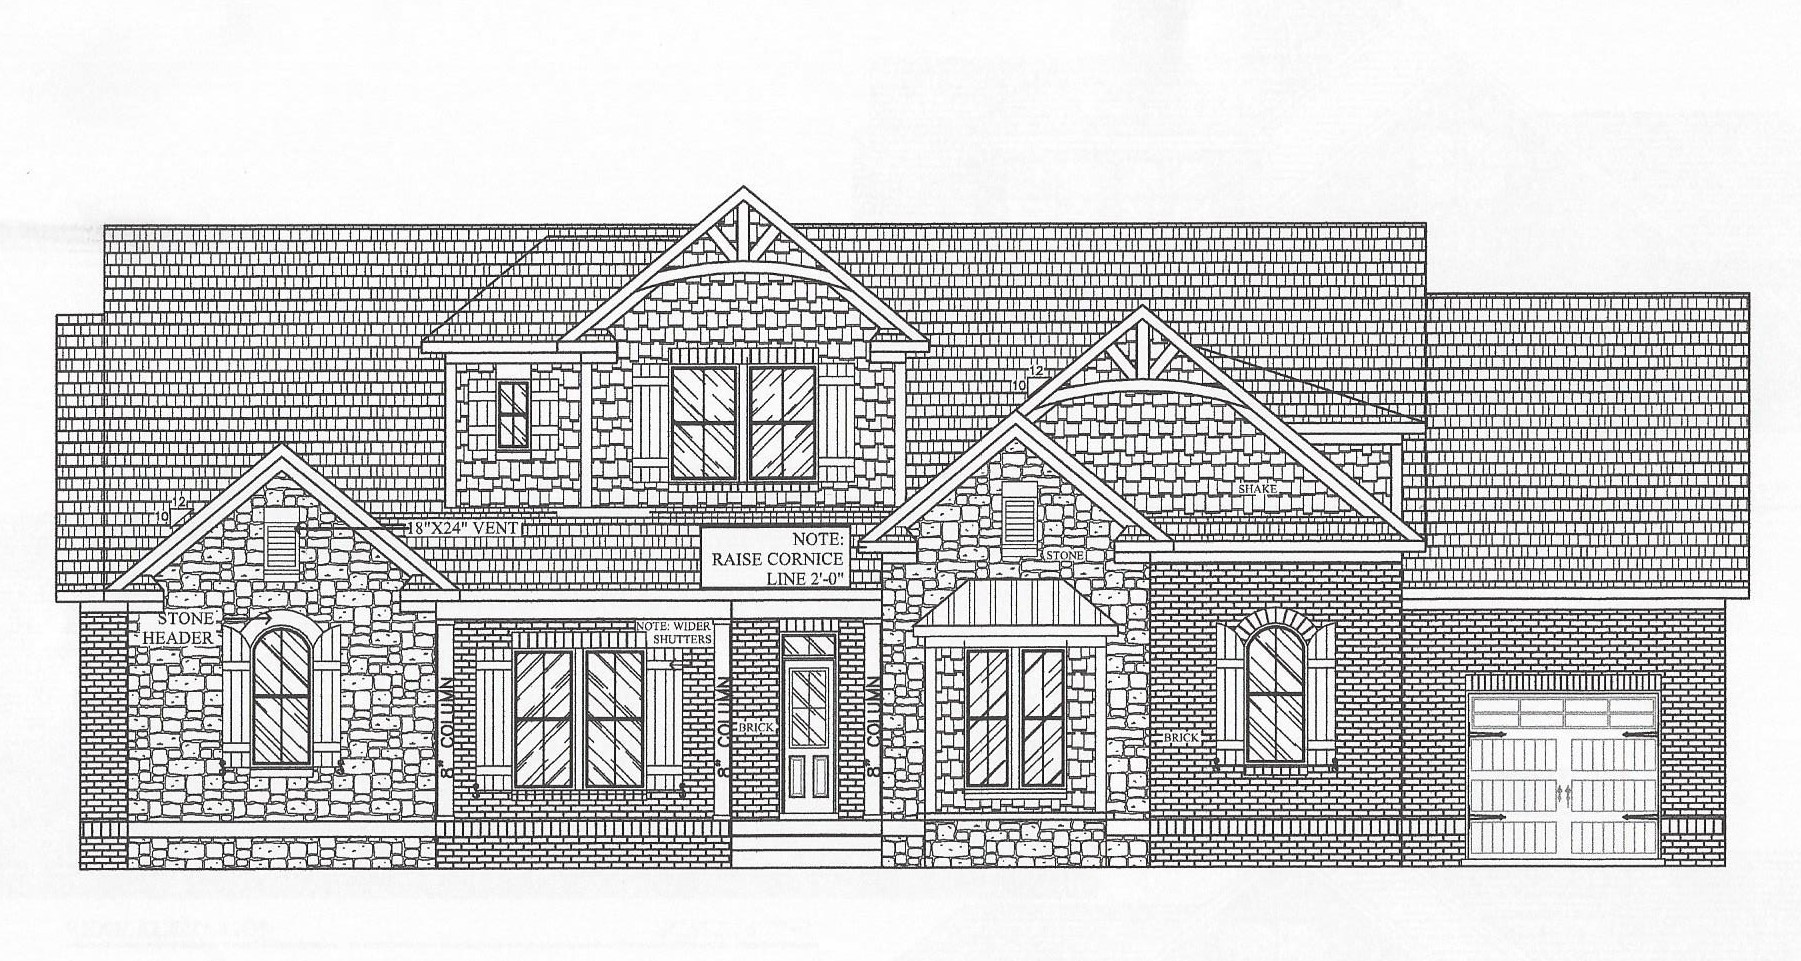 2006 Imagine Circle - LOT 91, Spring Hill, Tennessee